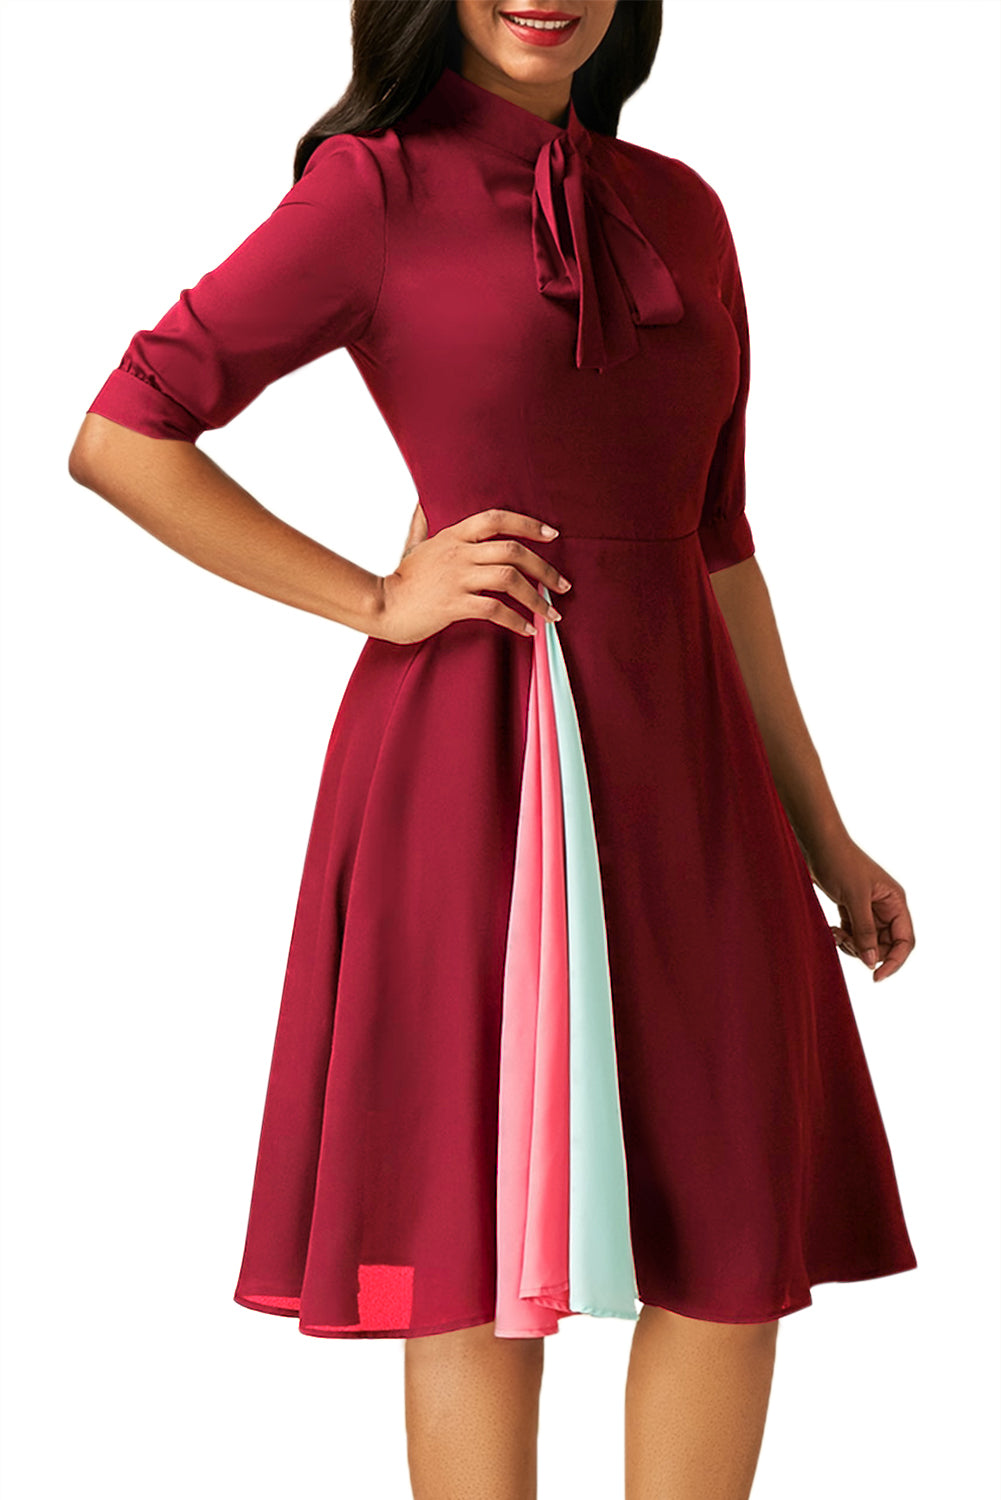 Her Fashion False Slit Splice Burgundy Bow Tie 80s-inspired Dress